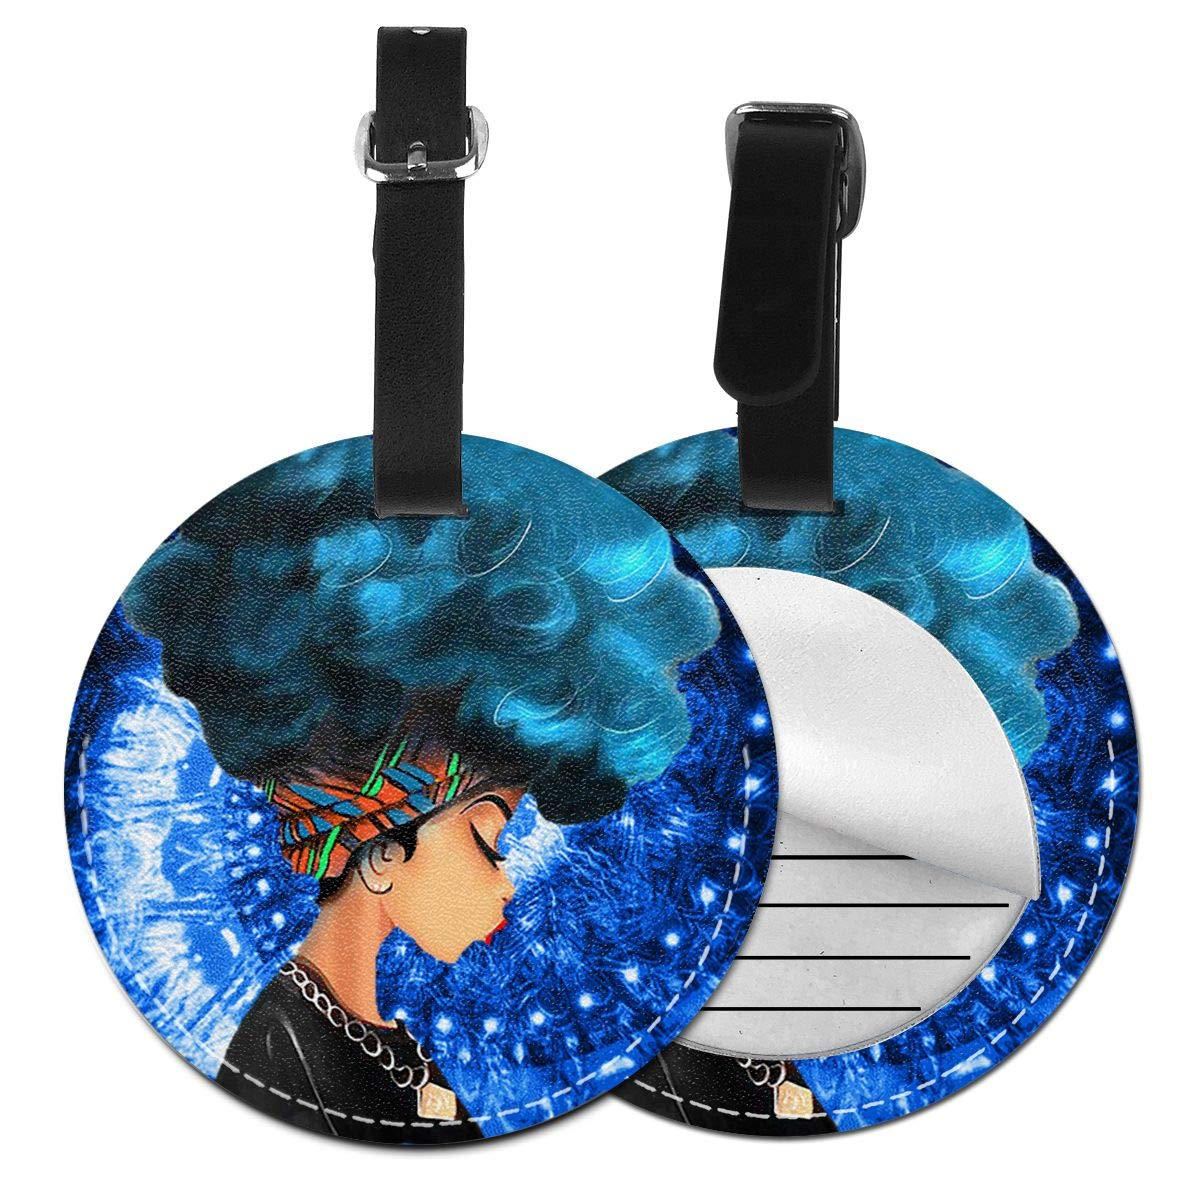 Free-2 Afro Girl African American Luggage Tag 3D Print Leather Travel Bag ID Card